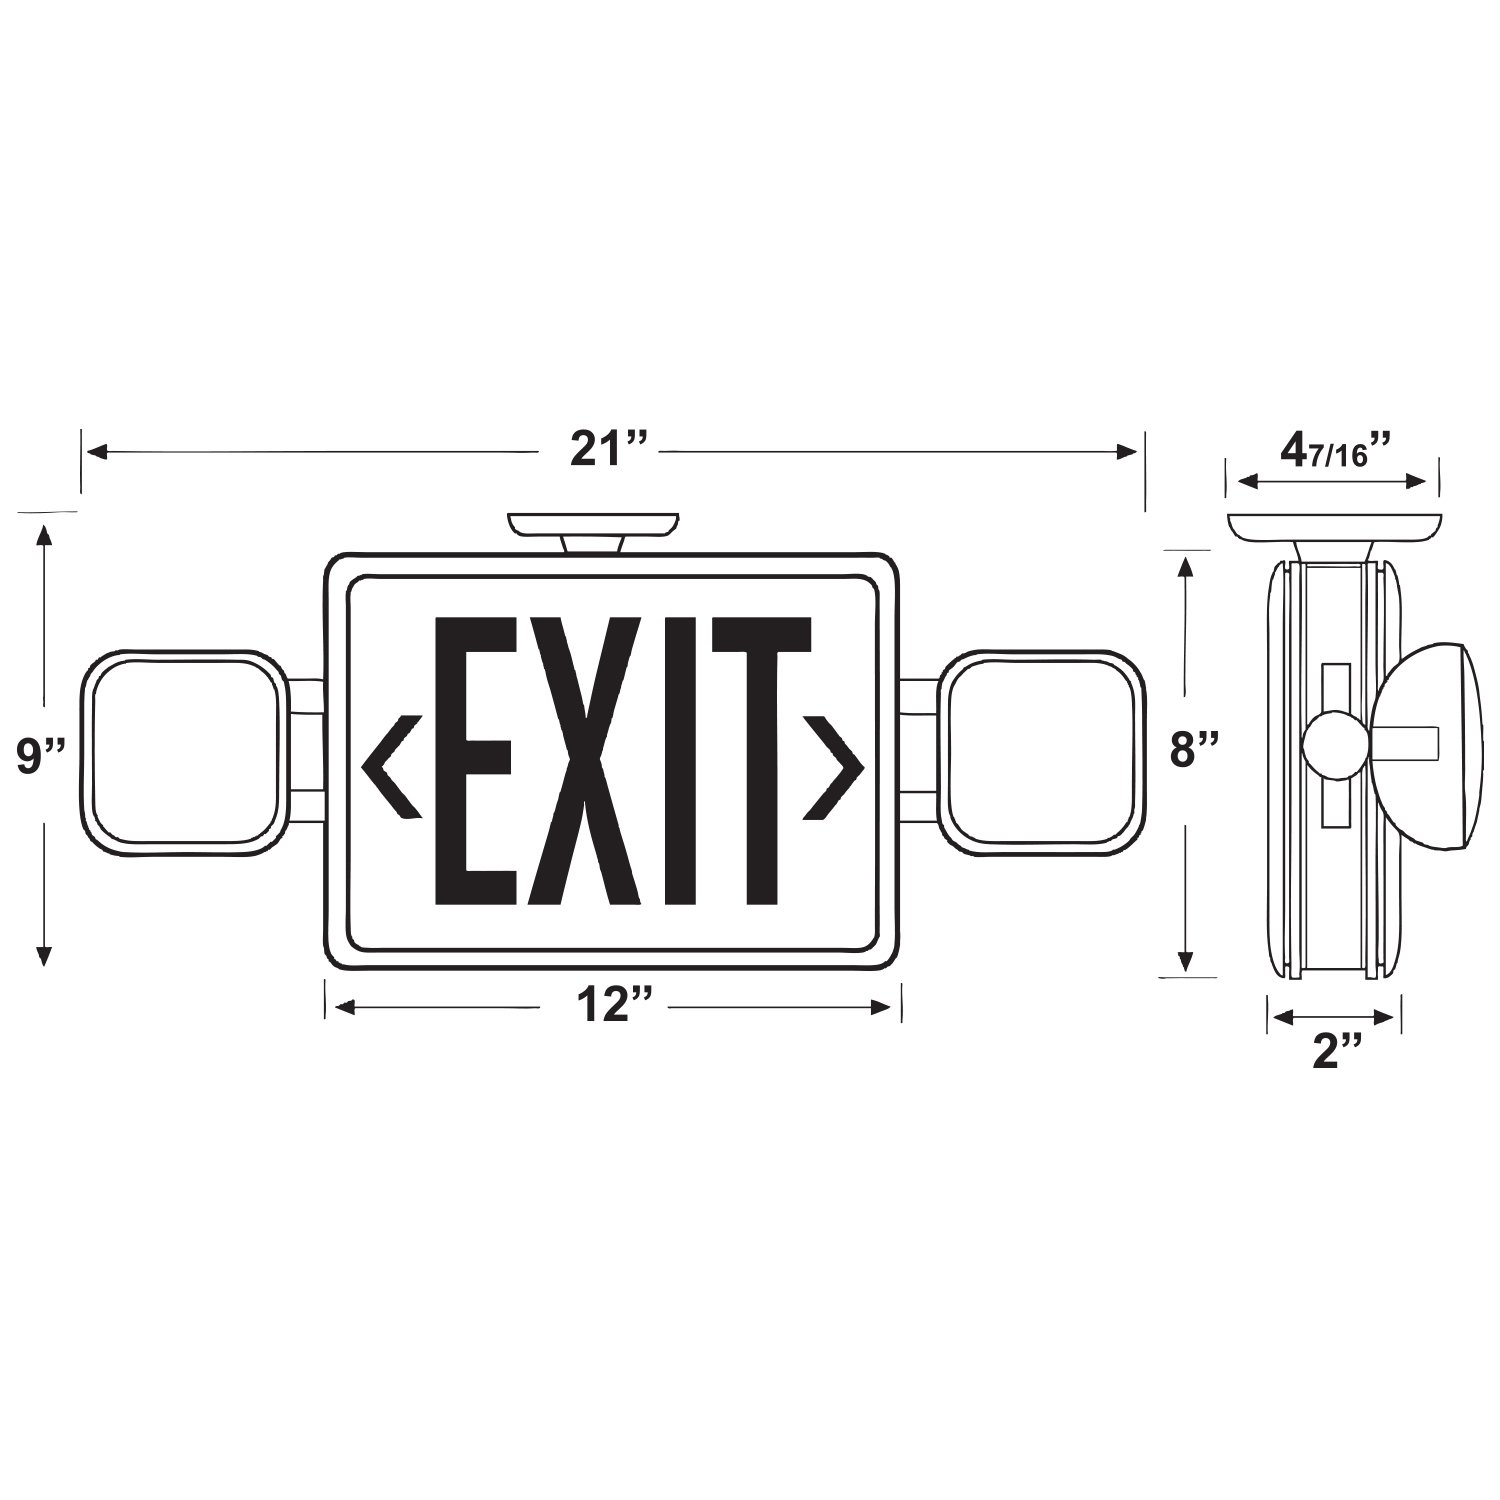 6 PACK - ALL LED EXIT & EMERGENCY COMBO - REMOTE CAPABLE (Red) Duel 120/277v - Self Diagnostic - Meets UL924, NFPA 101 Life Safety Code - 5 Year Warranty - EZ-Snap Top or End Mount